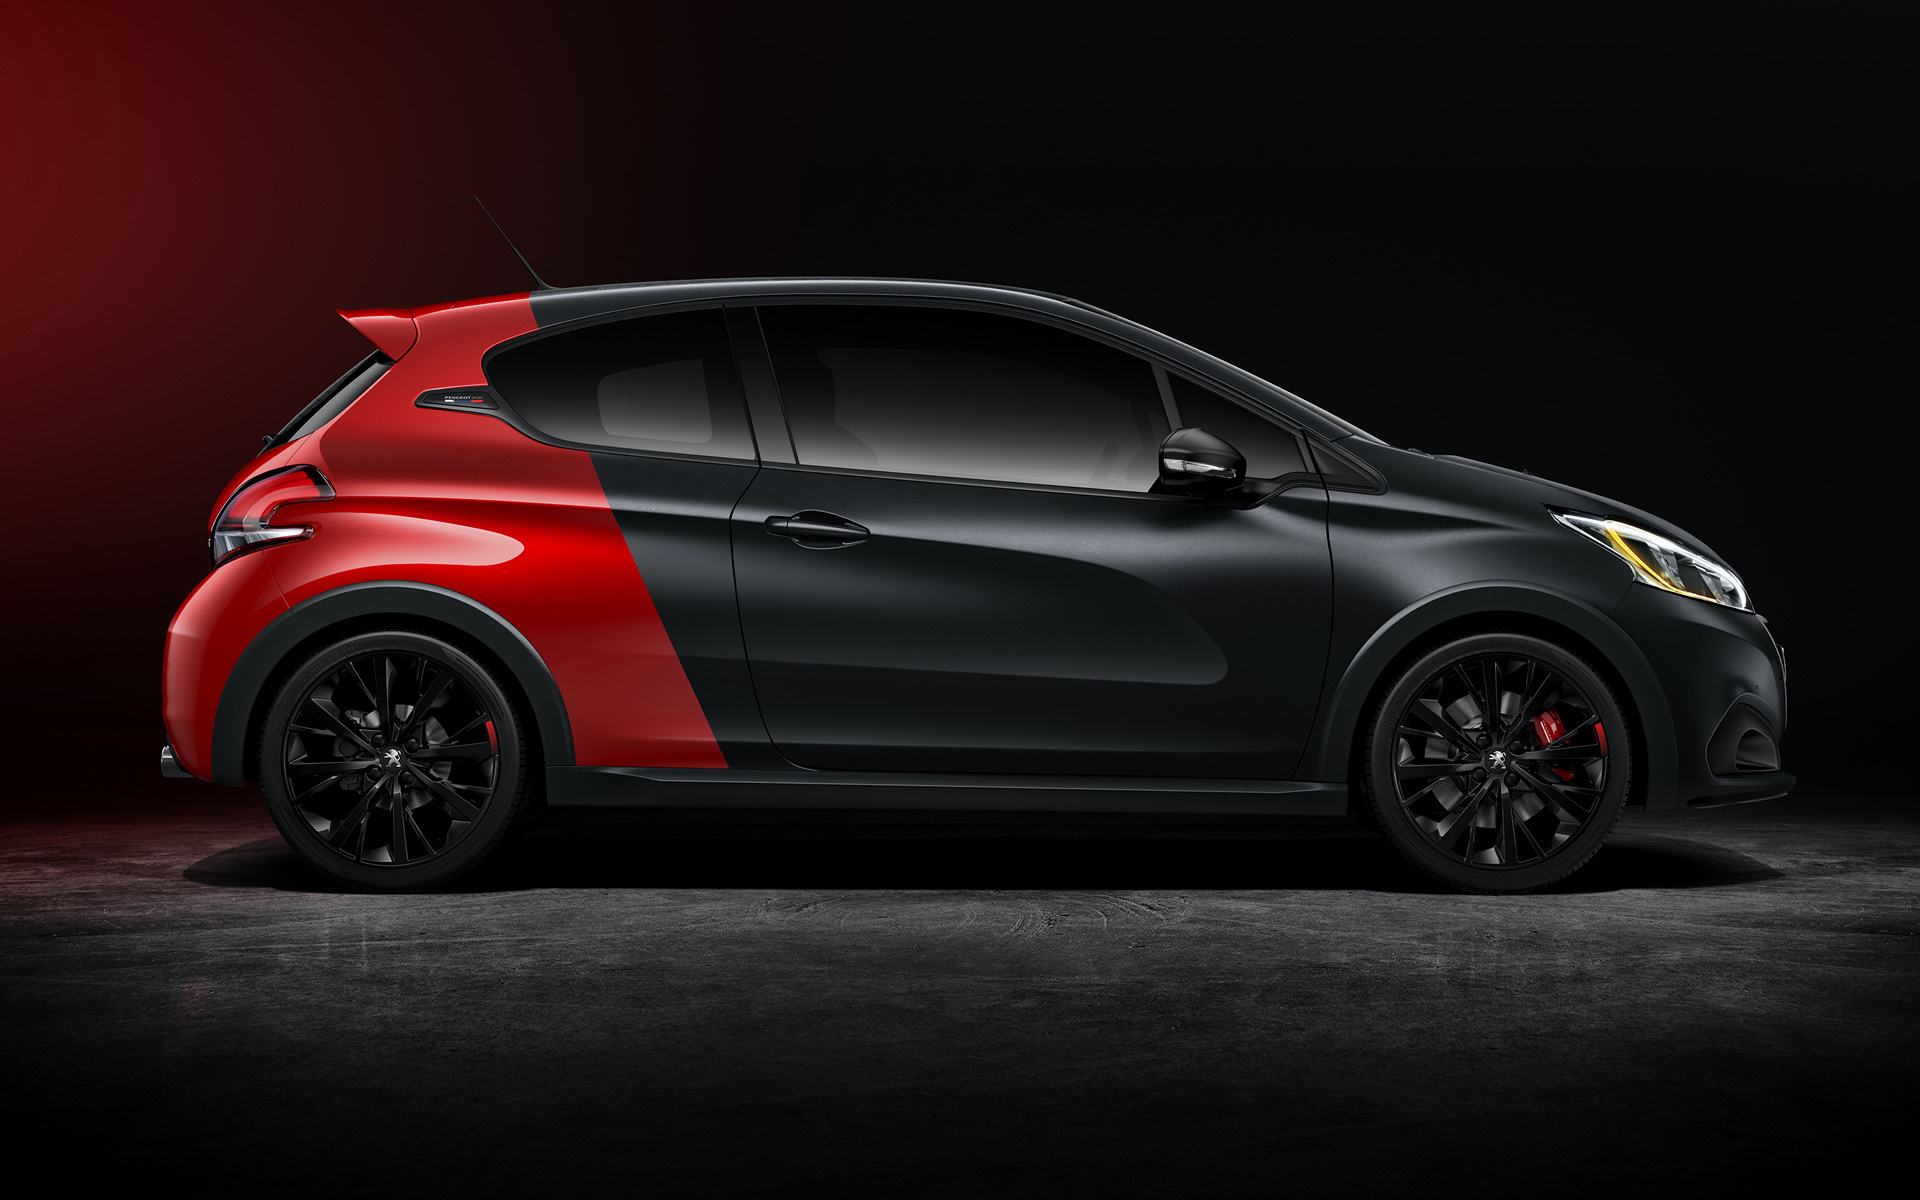 Mercedes Smart Car >> 2015 Peugeot 208 GTi by Peugeot Sport - Wallpapers and HD ...